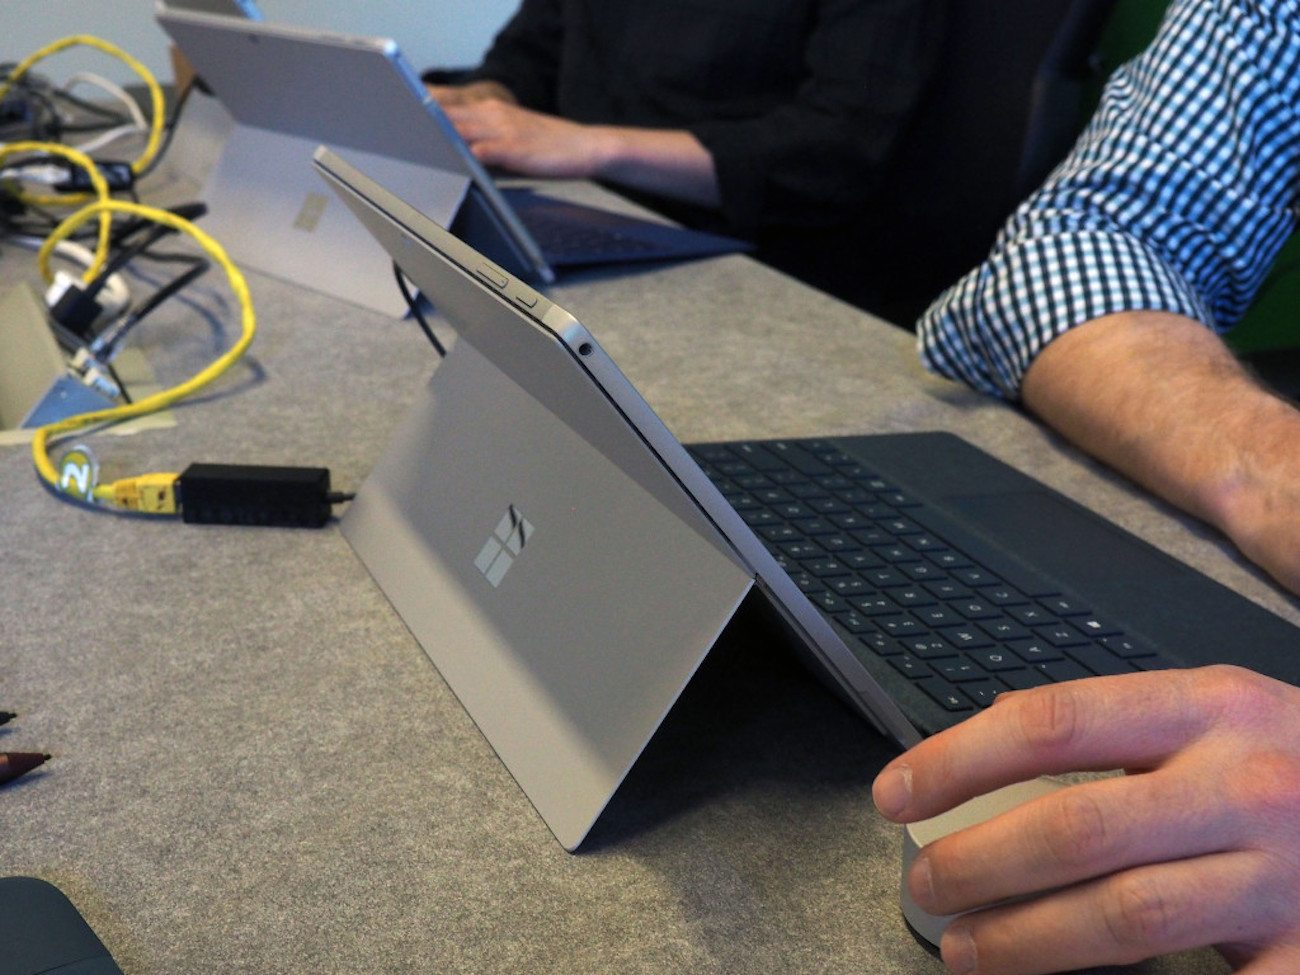 Microsoft Surface Pro Laptop